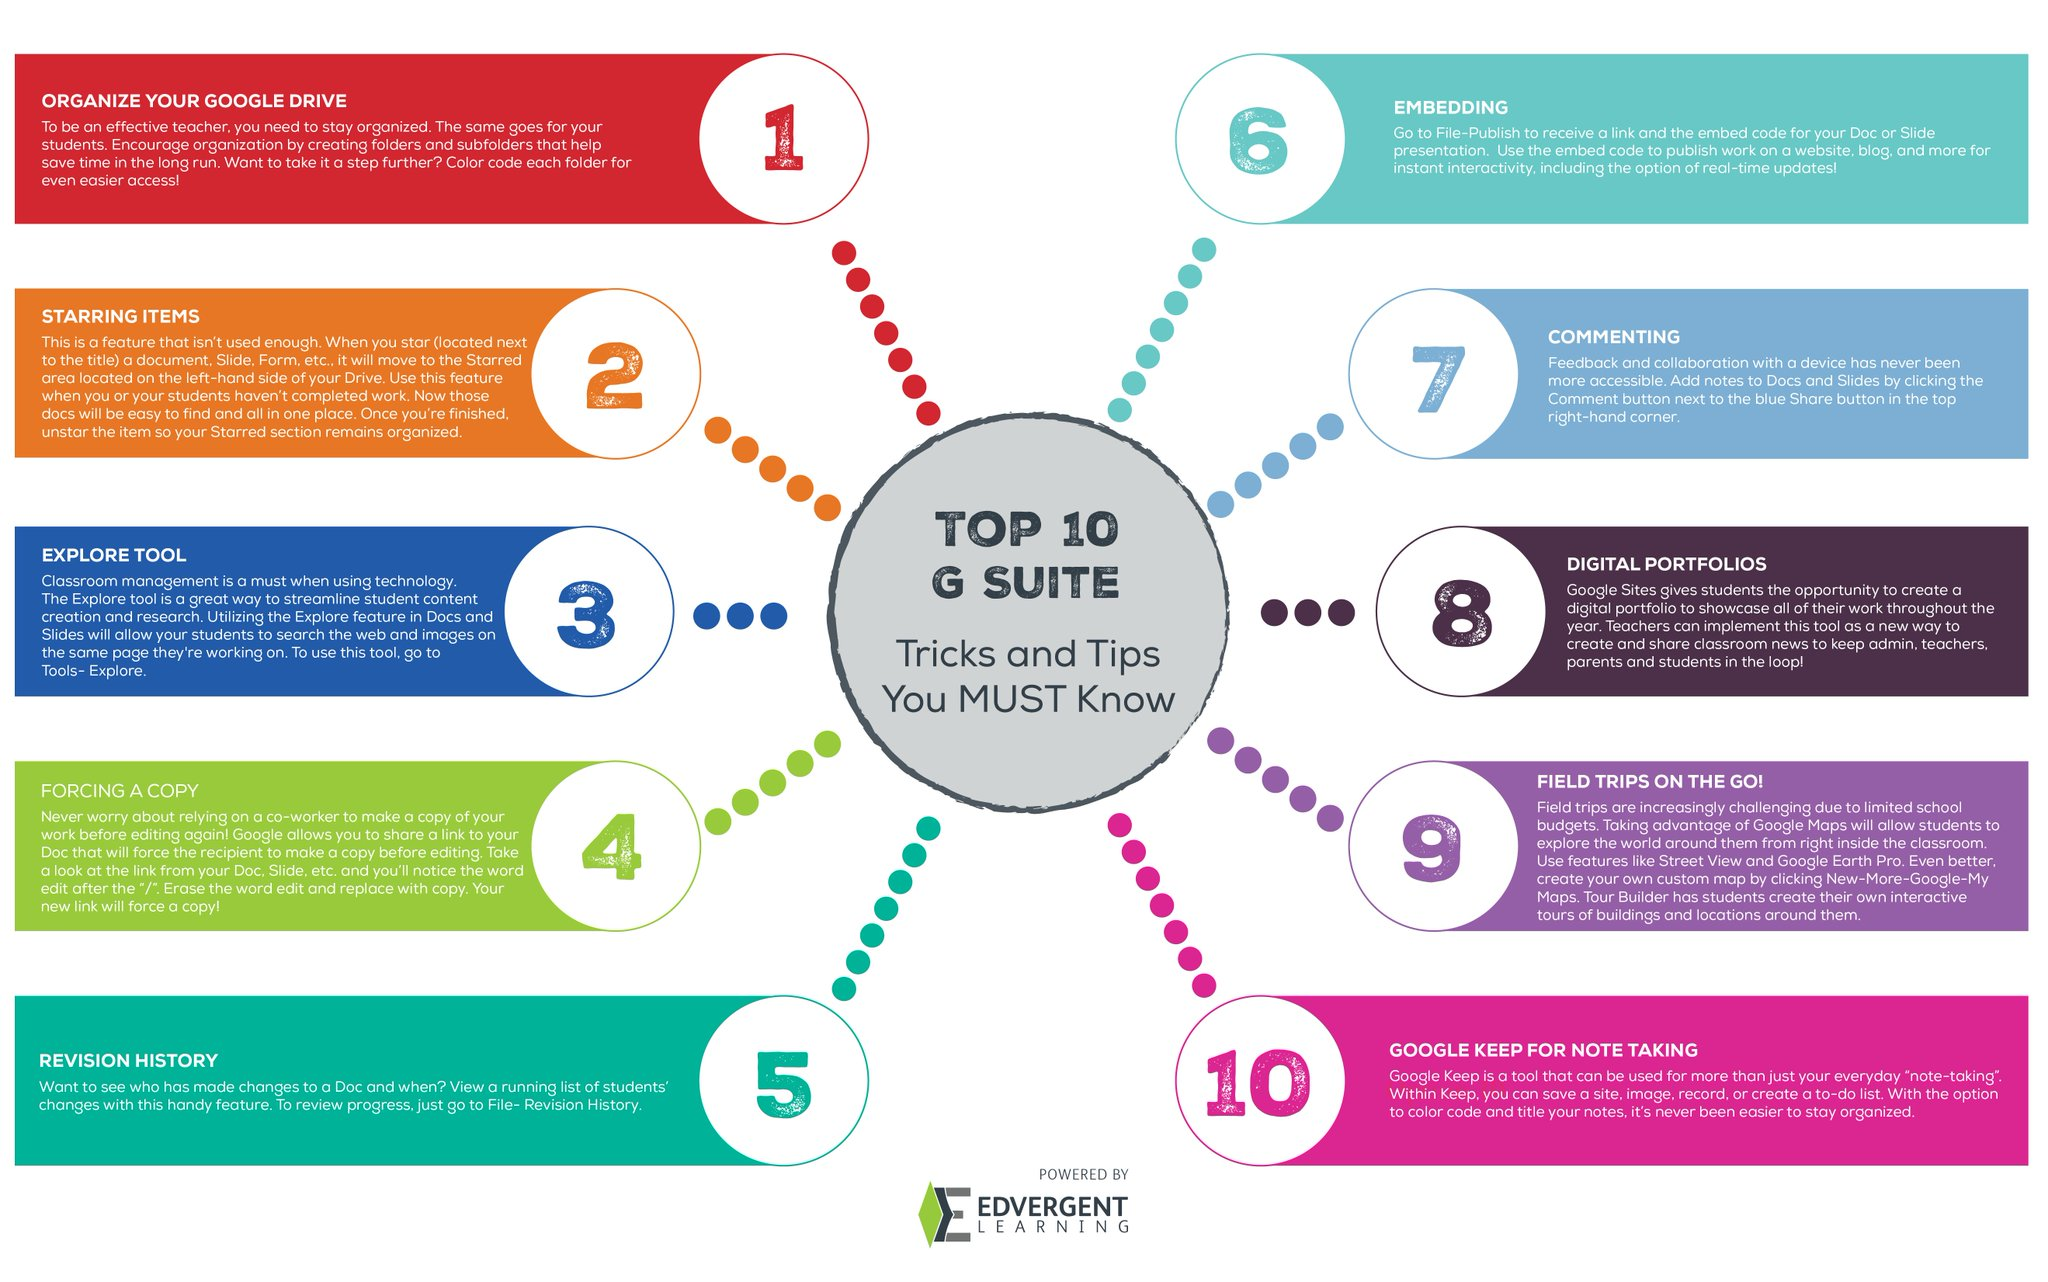 Edvergent Learning On Twitter Did You Know GSuite Could Do This Enjoy Cool Infographic GivingTuesday2017 Check Out The Top 10 G Suite Tricks